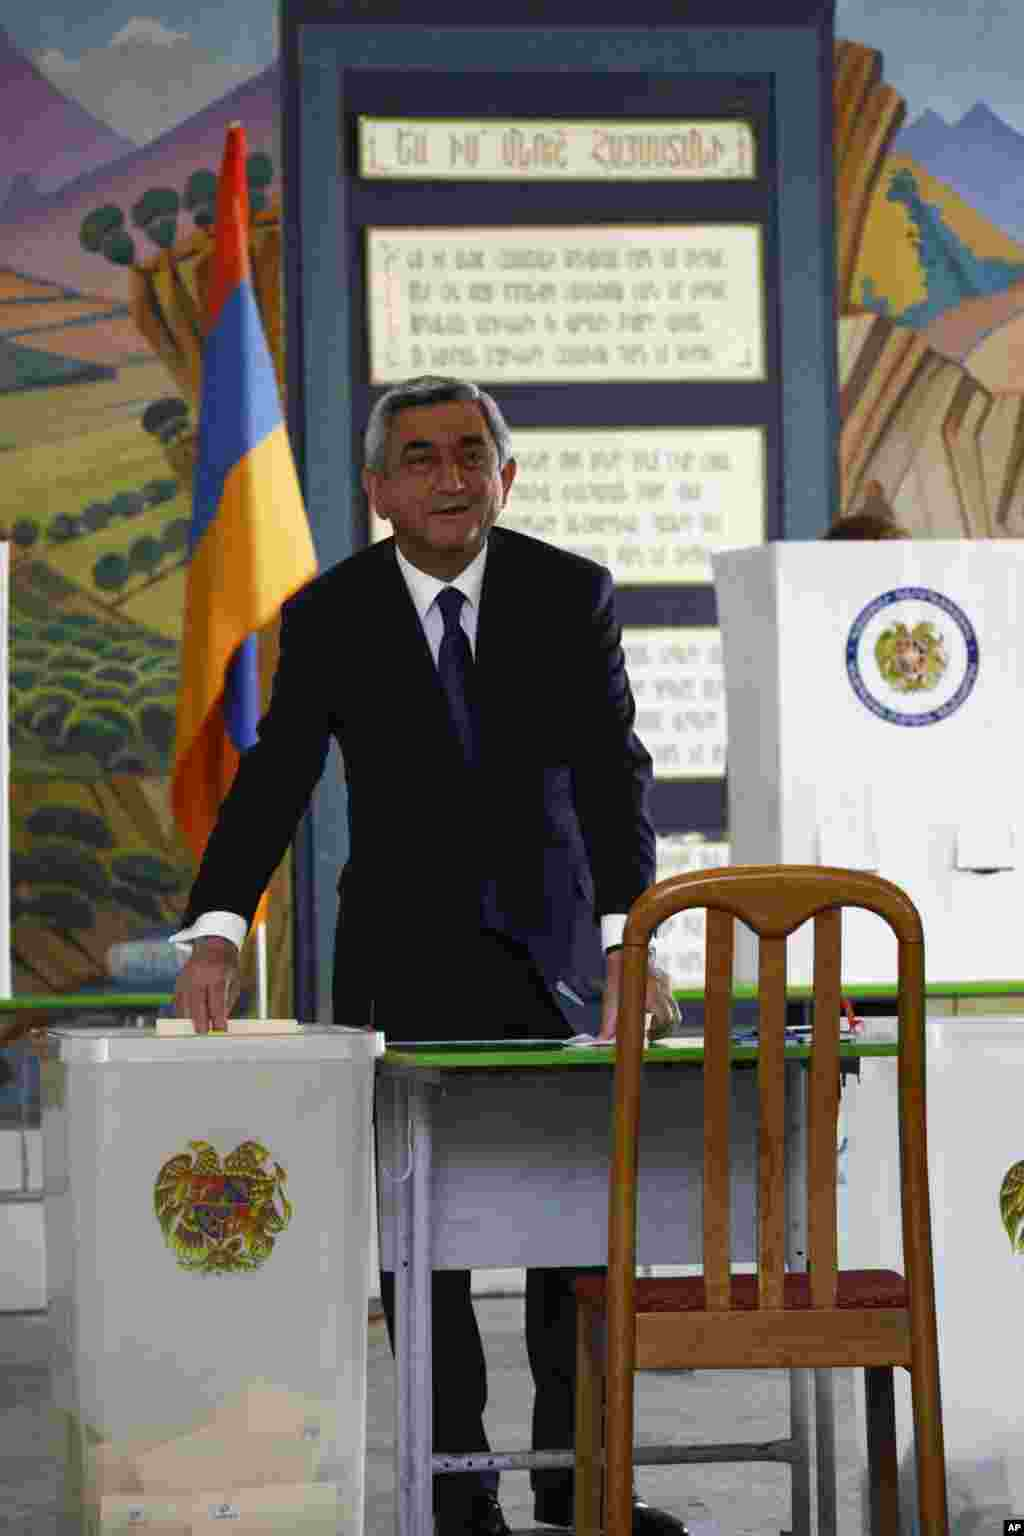 Armenian President Serzh Sargsyan casts his ballot for a parliamentary election in the Armenian capital Yerevan May 6, 2012. Armenian voters headed to the polls on Sunday for a parliamentary election its leaders hope will bolster stability and be free of